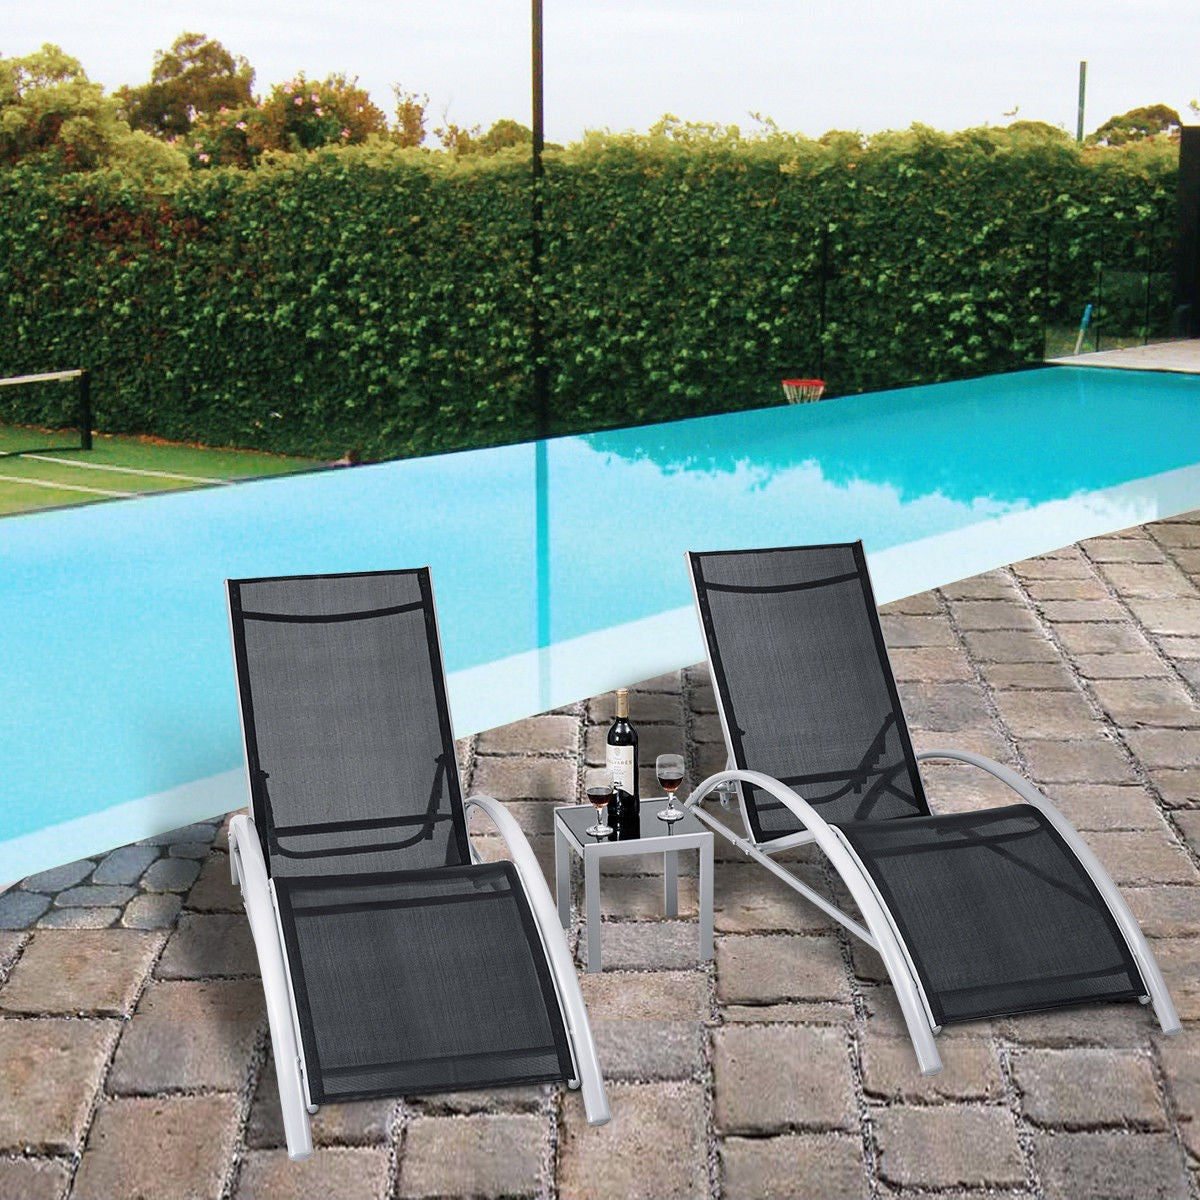 Pleasing Oasis Pool Lounger Chair Set With Glass Table Black Dailytribune Chair Design For Home Dailytribuneorg